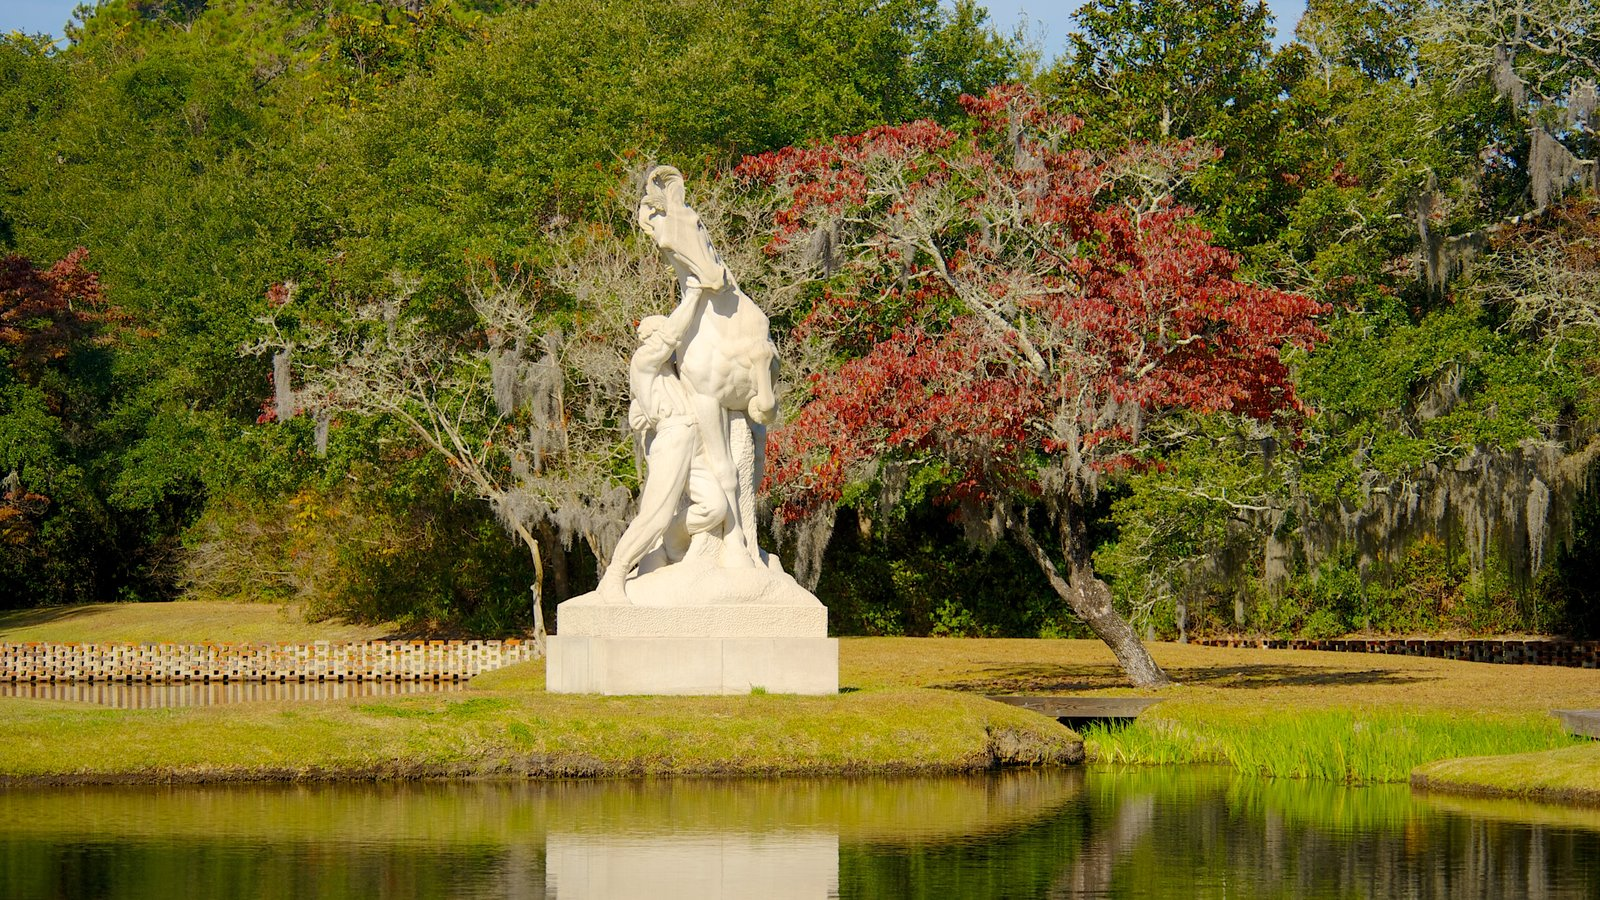 Murrells inlet pictures view photos images of murrells inlet for Brookgreen gardens south carolina